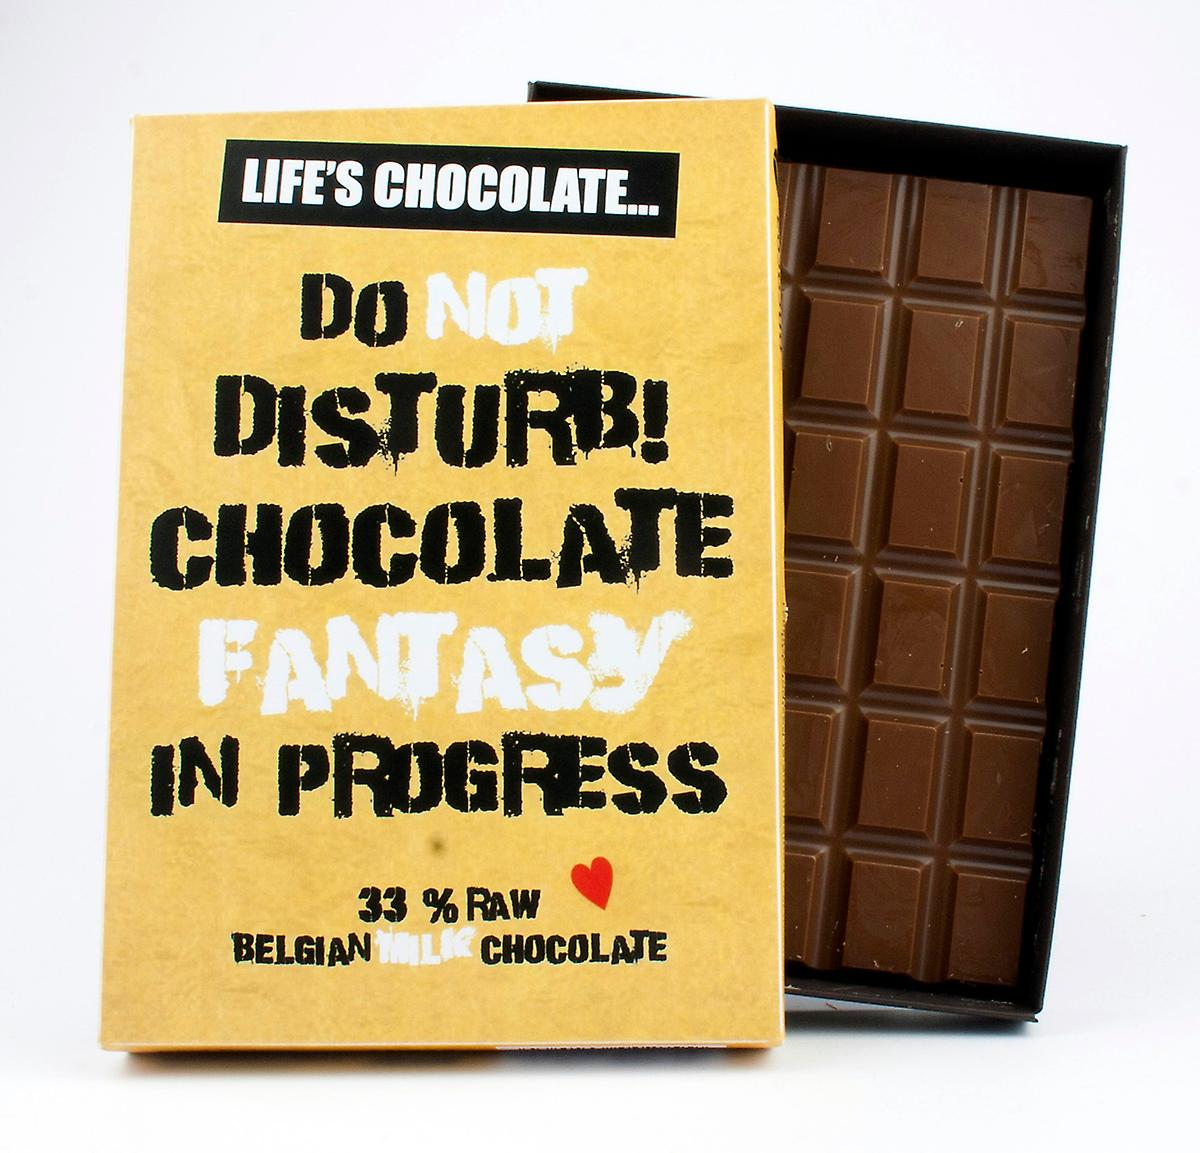 Funny Boxed Chocolate Quote Gift For Men Women Best Friend Greeting Card for Him or Her LC114